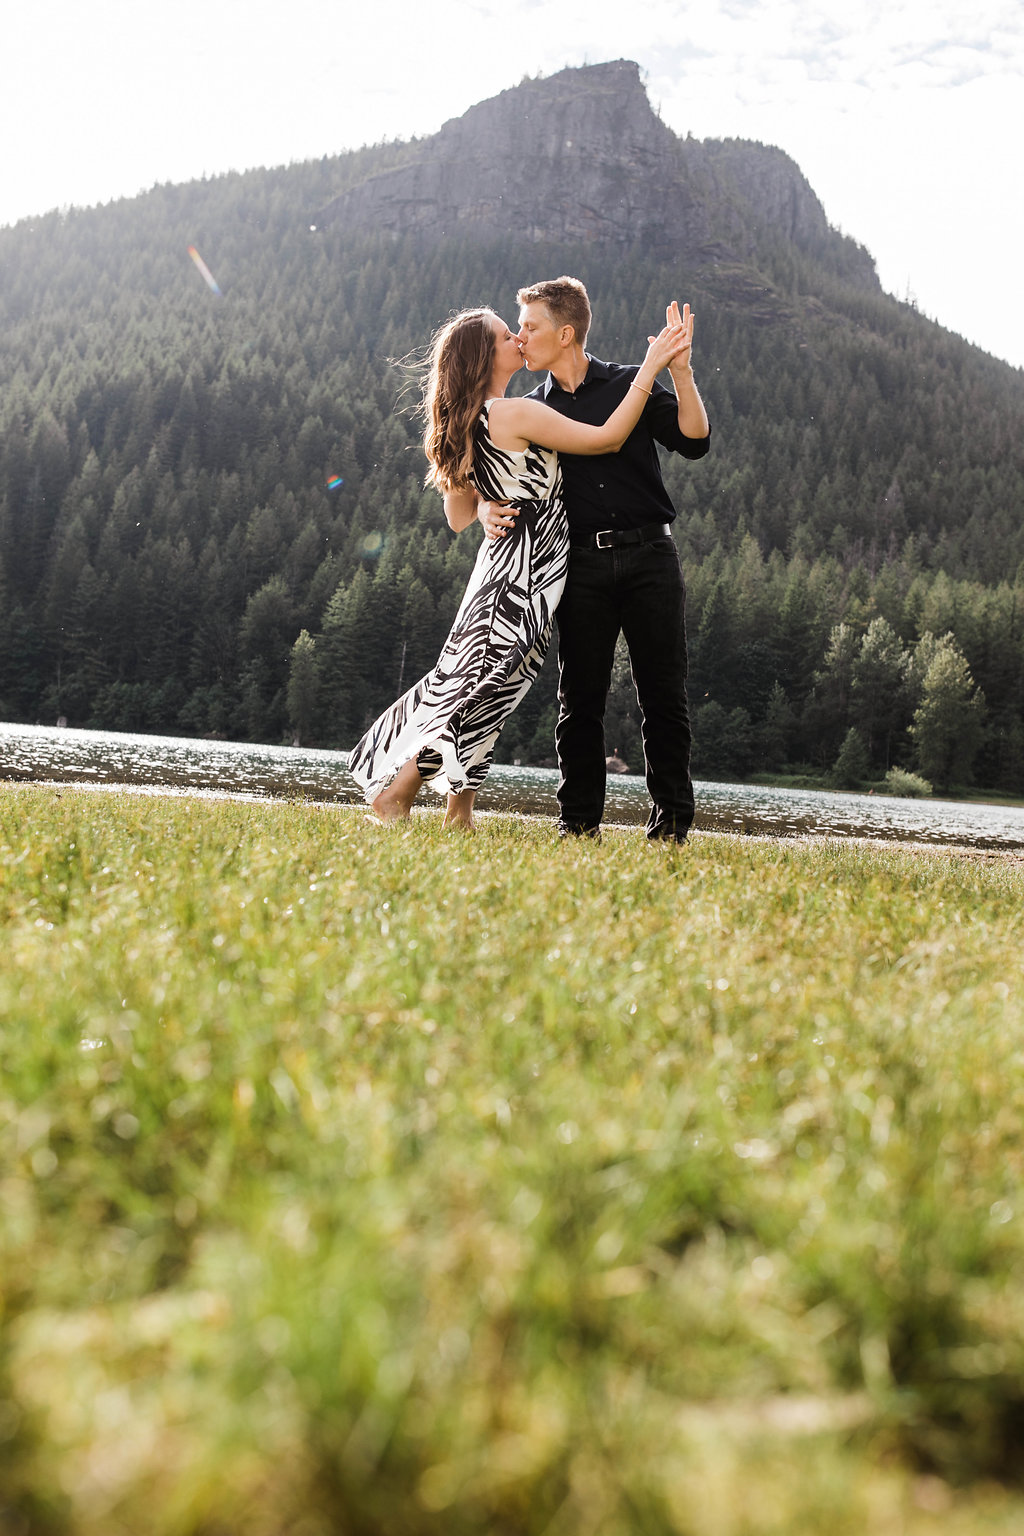 Eivind+Elyse_Engagement_Rattlesnake_lake_ridge_Seattle_Photographer_Adina_Preston_Weddings_22.JPG